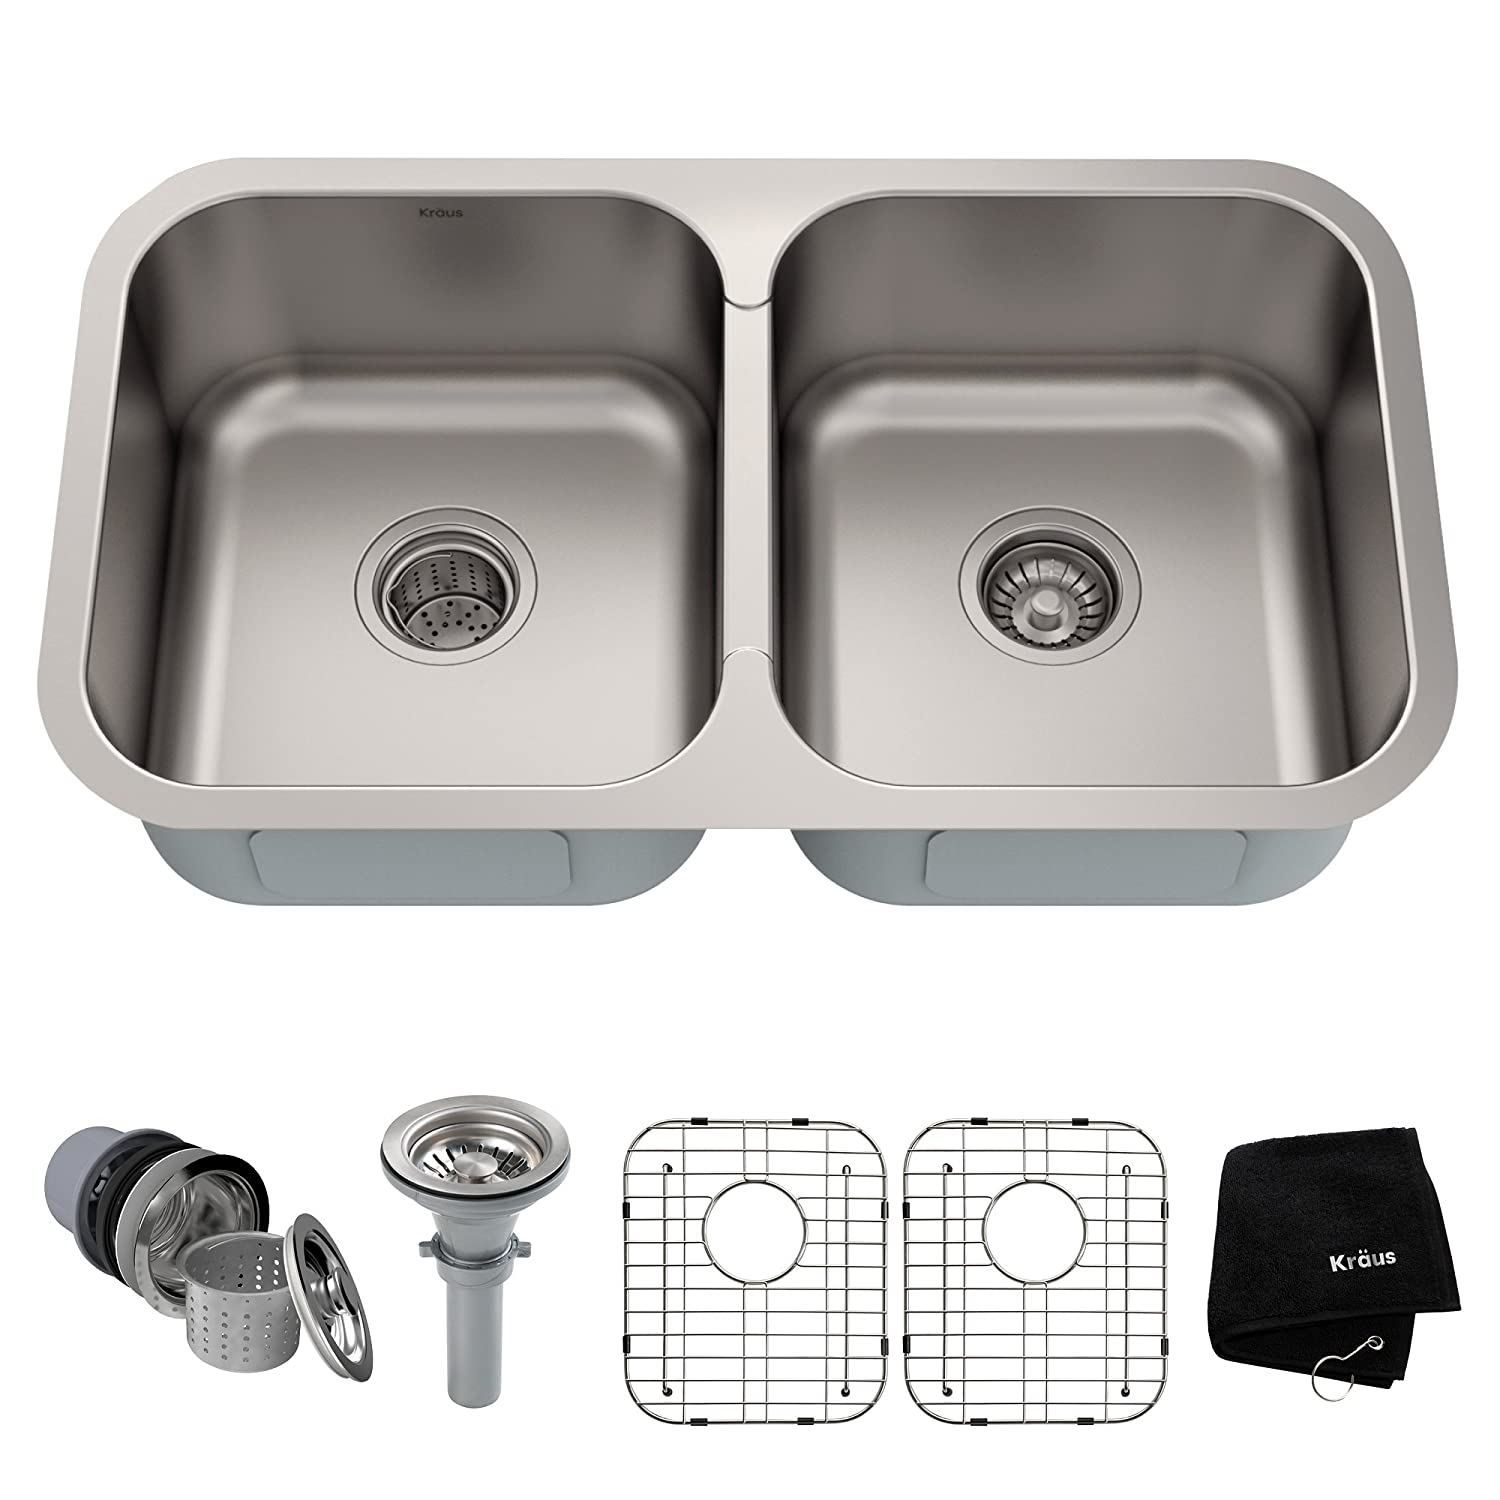 Kraus KBU29 32 inch Undermount 50/50 Double Bowl 18 gauge Stainless on stainless apron kitchen sinks, stainless kitchen cabinets, deep undermount laundry sinks, at home depot kitchen sinks, commercial kitchen sinks, large kitchen sinks, stainless undermount prep sinks, large single basin sinks, lowes undermount sinks, colored kitchen sinks, eljer kitchen sinks, ceramic kitchen sinks, stainless farm sinks for kitchens, s.s. sinks, 36 kitchen sinks, under the counter kitchen sinks, stainless bathroom sinks, stainless steel undermount kitchen sinks47.2, sterling stainless sinks, rv kitchen sinks,